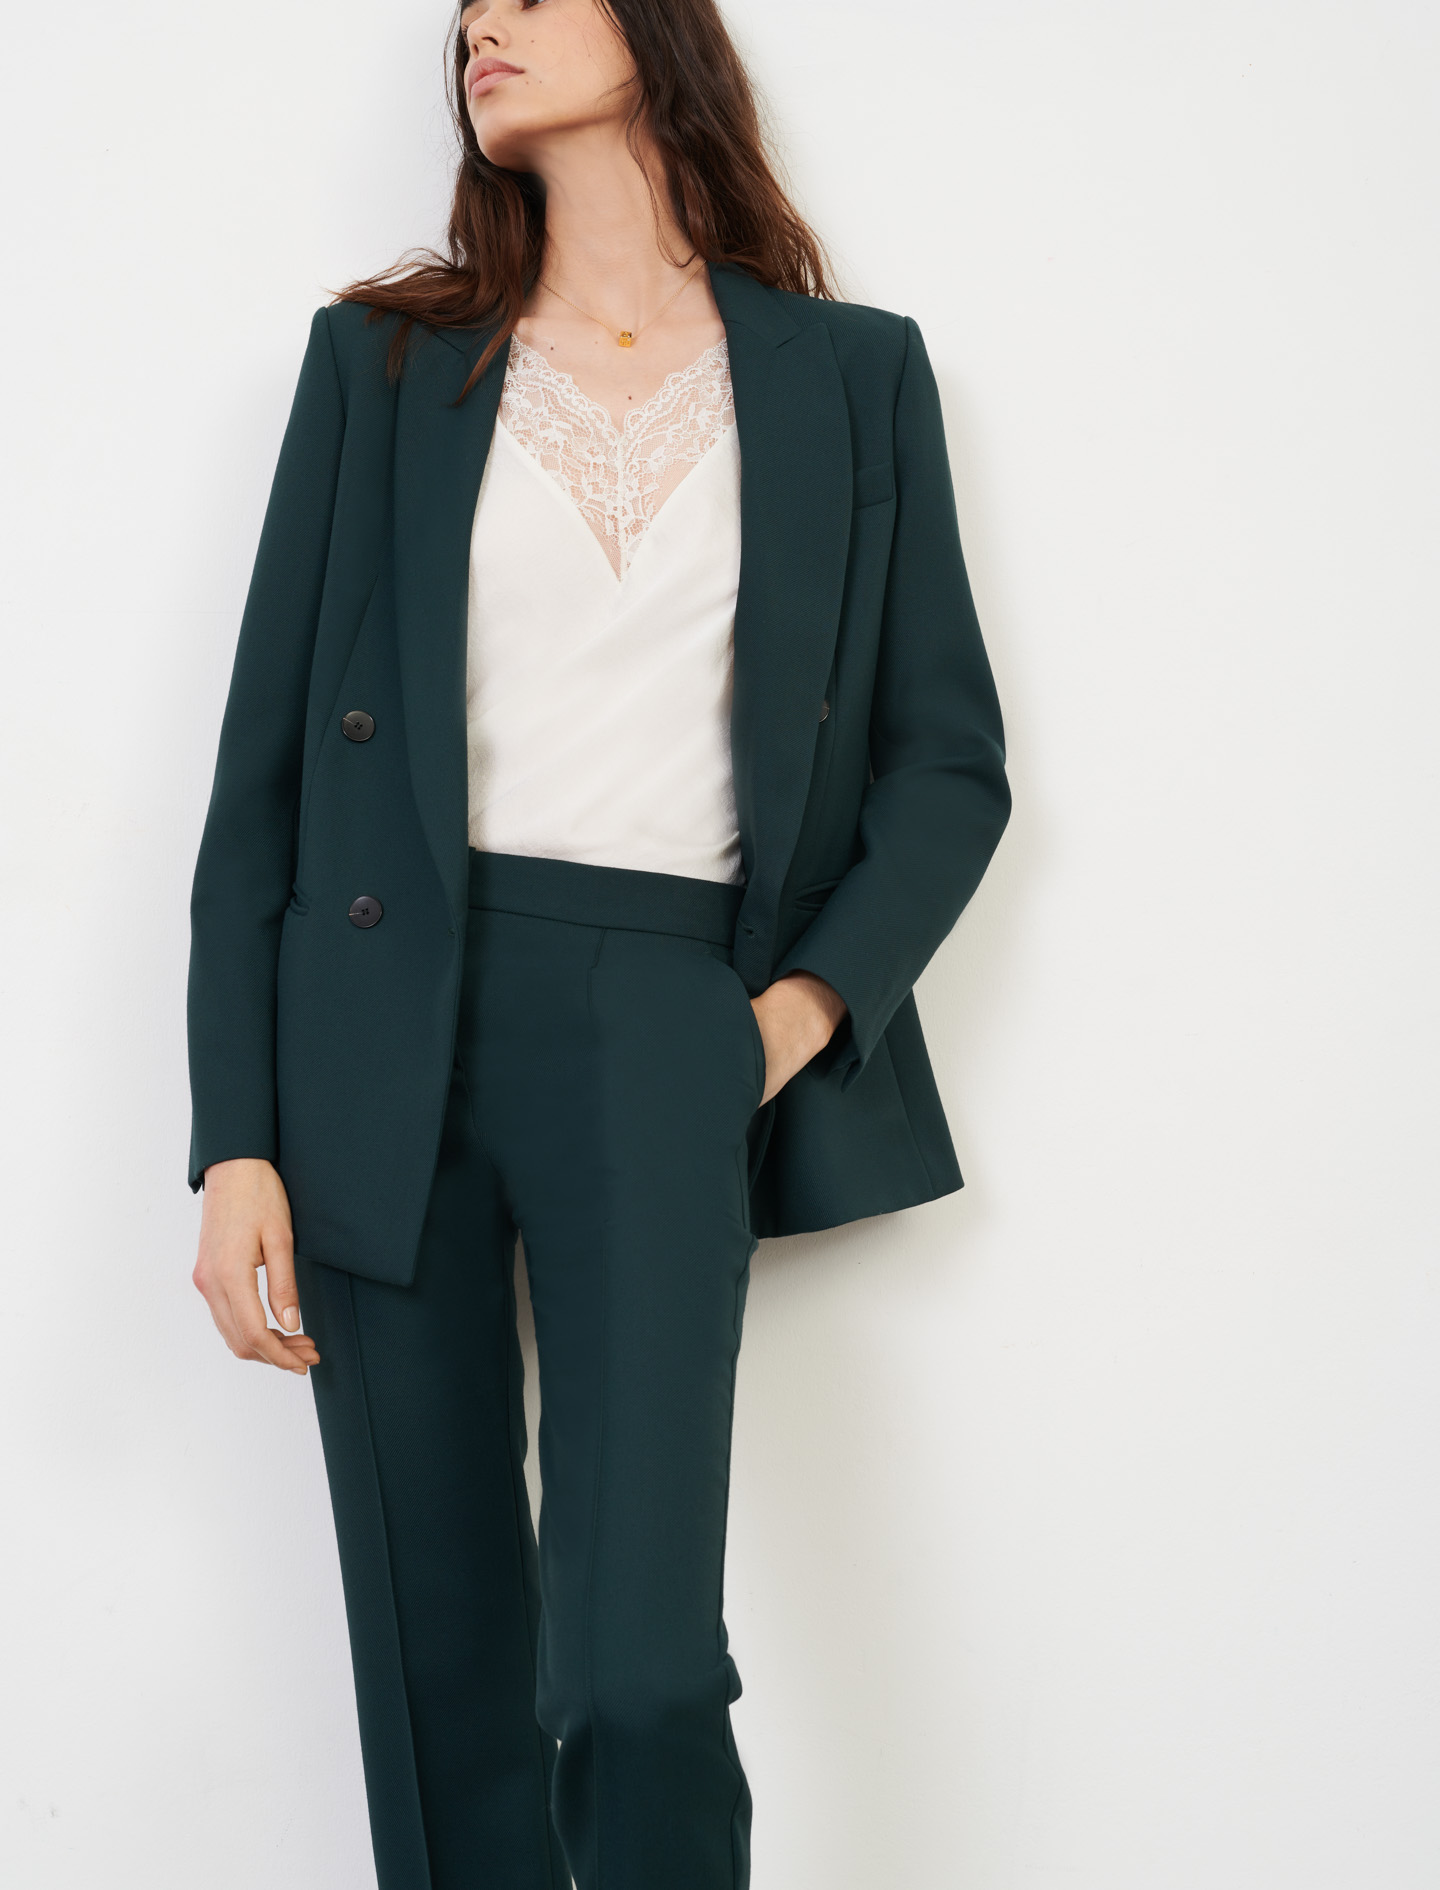 Maje Double-breasted suit jacket